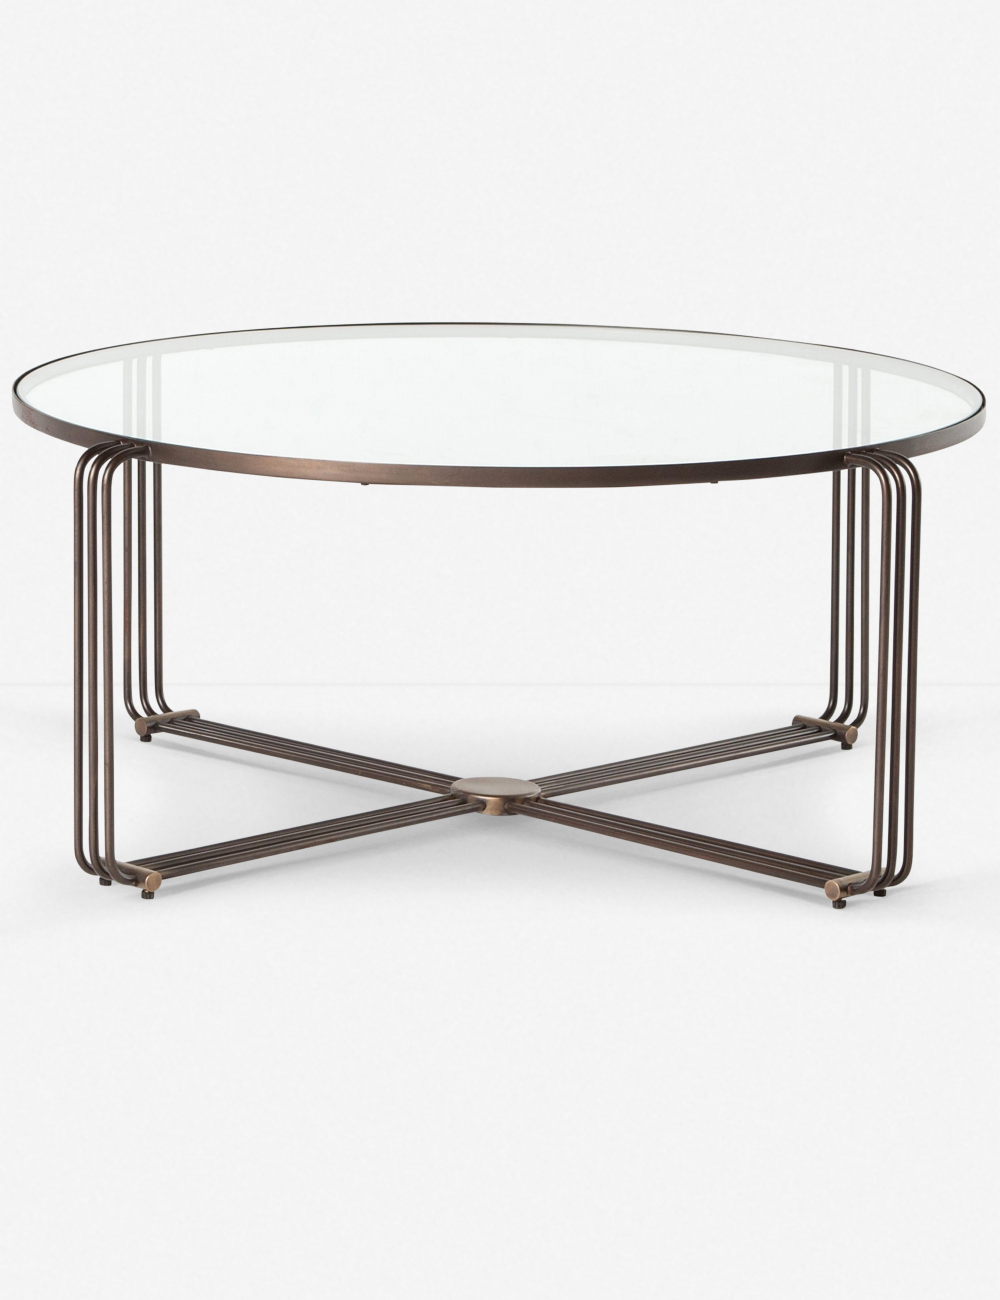 This Glass Top Coffee Table Blends Modern Aesthetics With Art Deco Style Thanks To The Brass And Iron B Coffee Table Coffee Table Wood Living Room Coffee Table [ 1300 x 1000 Pixel ]